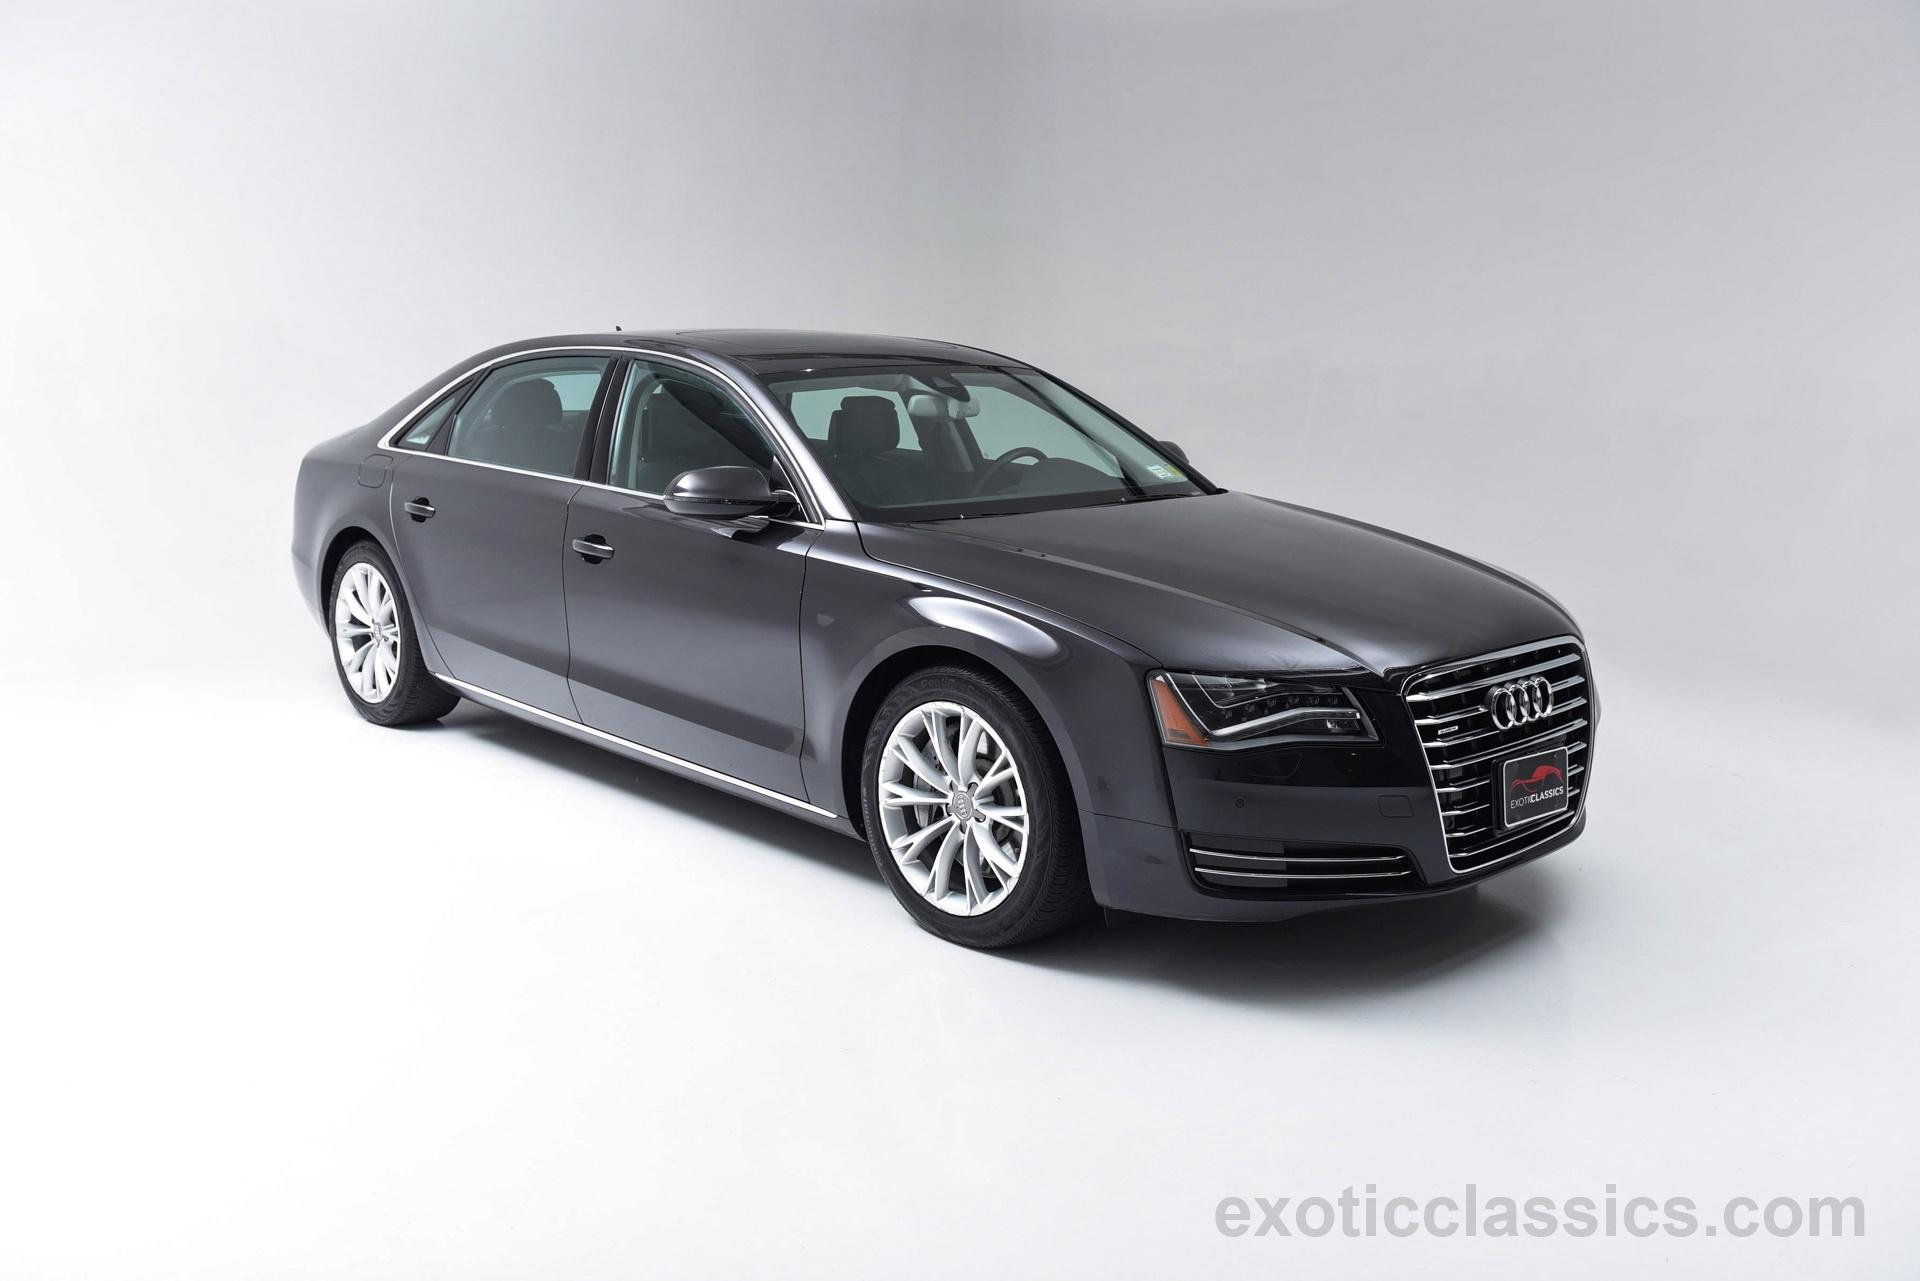 2012 audi a8 l quattro exotic and classic car dealership specializing in ferrari porsche. Black Bedroom Furniture Sets. Home Design Ideas